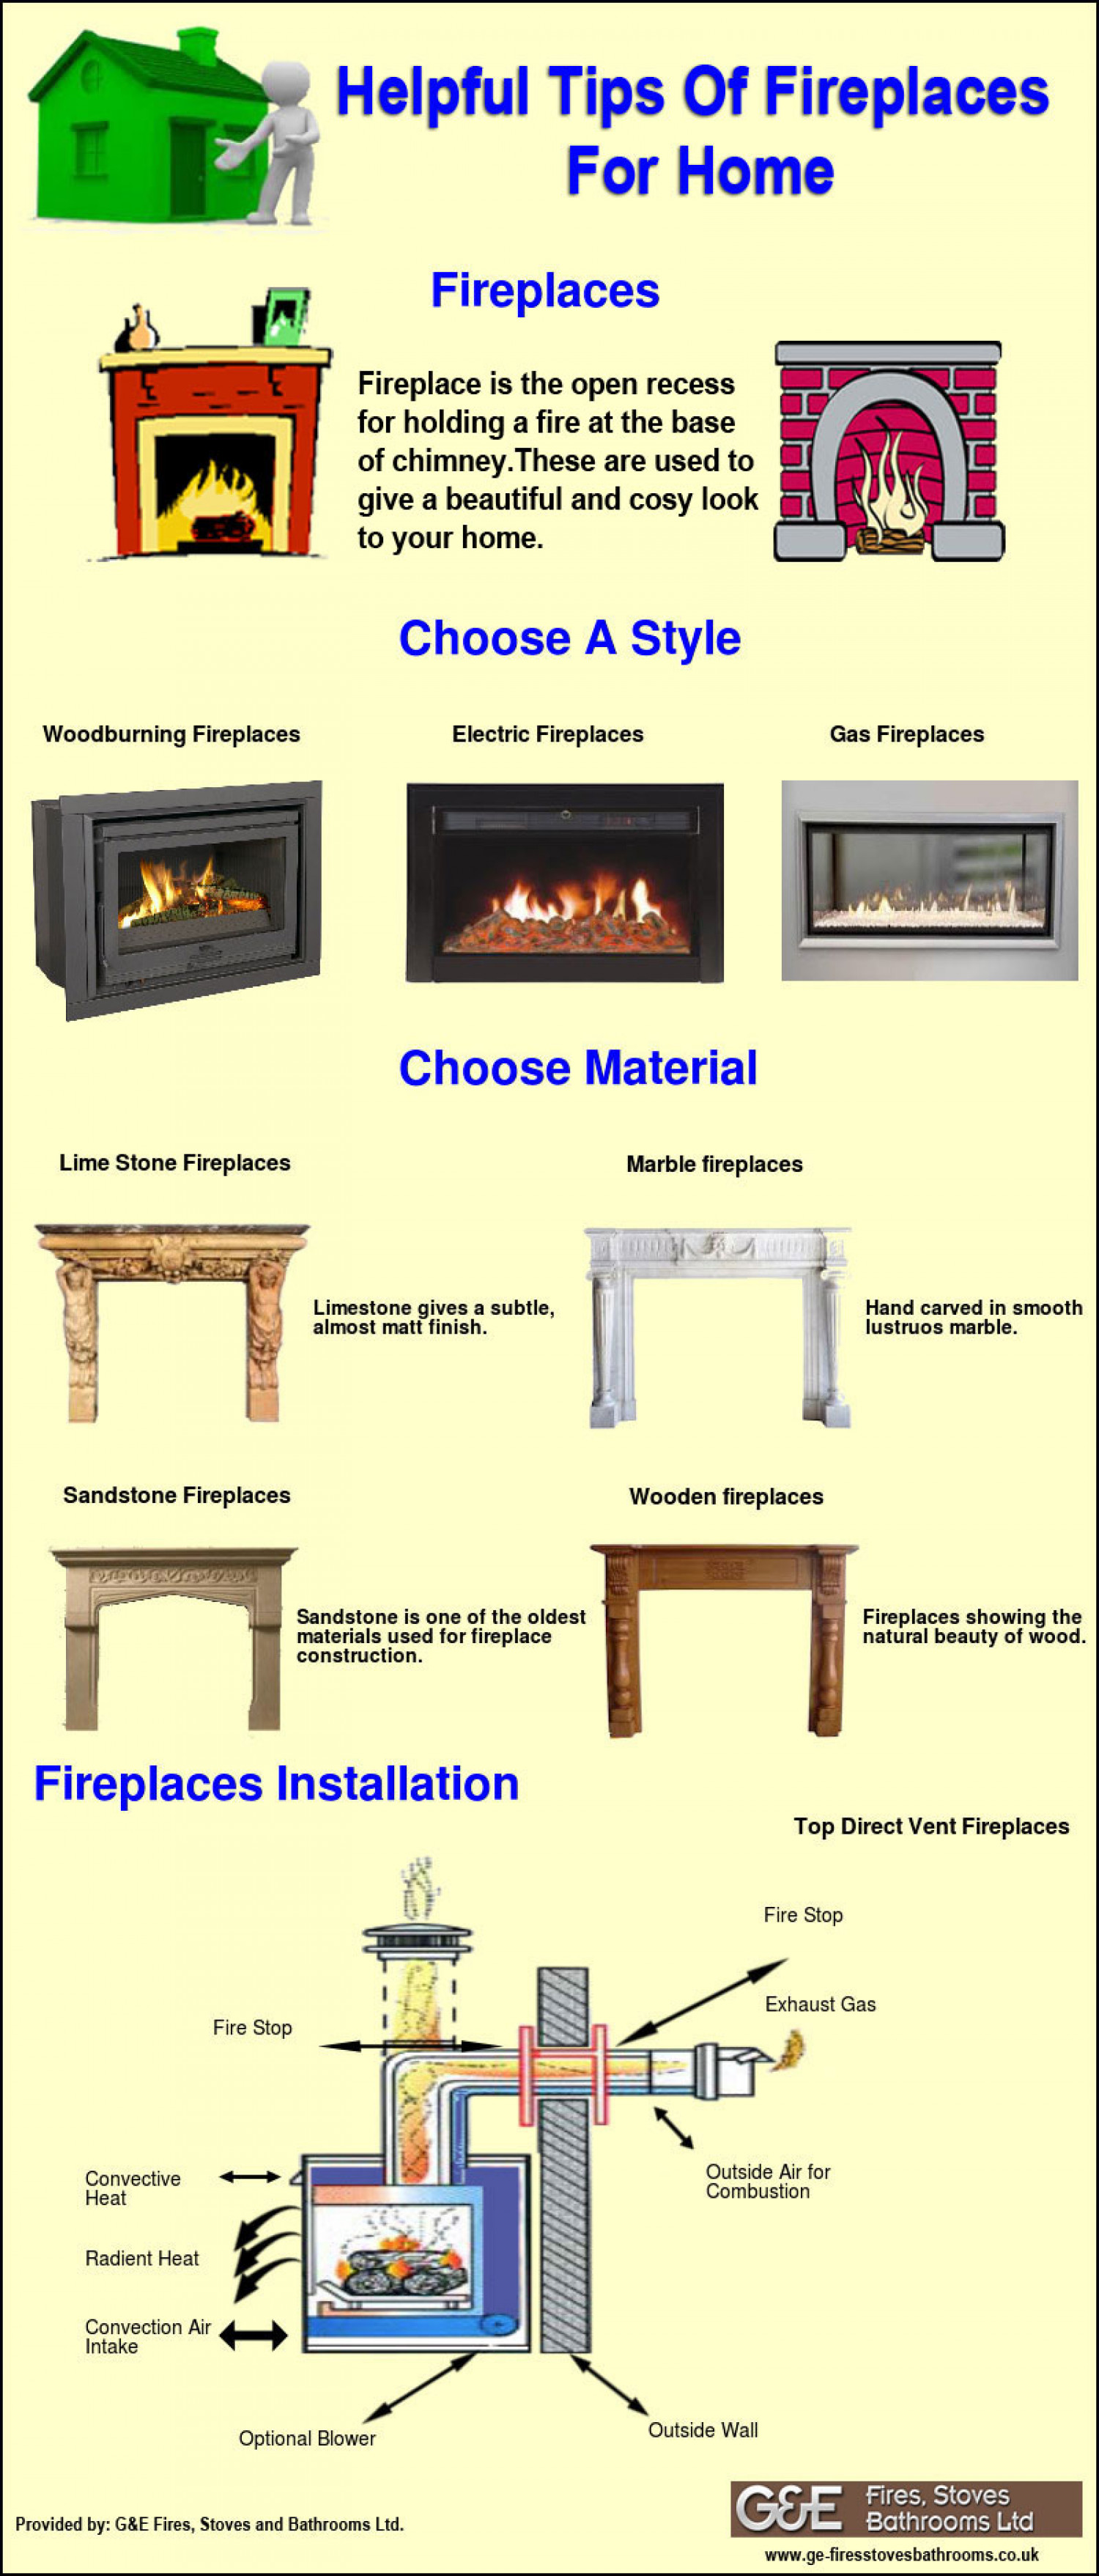 Helpful Tips of Fireplaces for Home Infographic